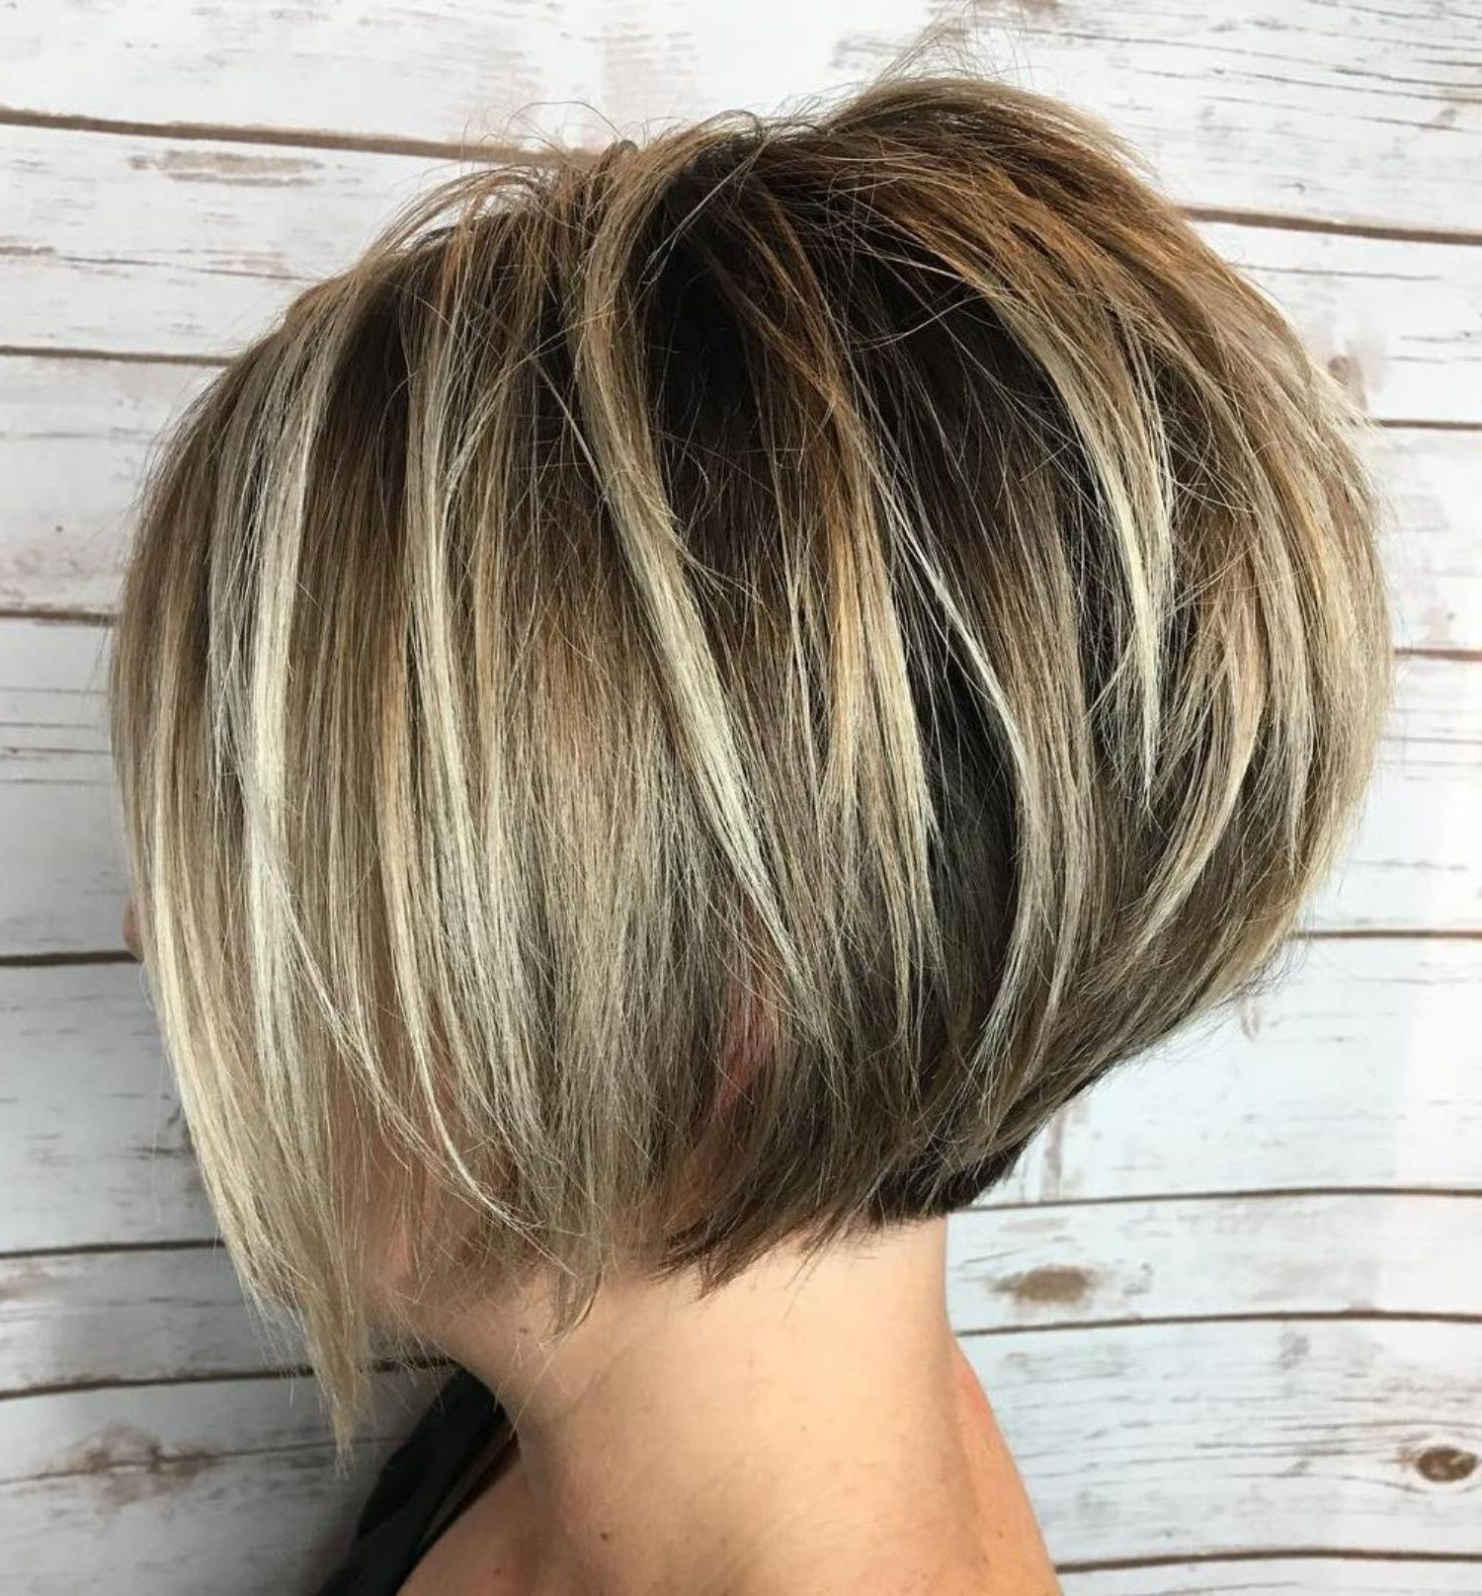 50 Trendy Inverted Bob Haircuts (View 4 of 20)